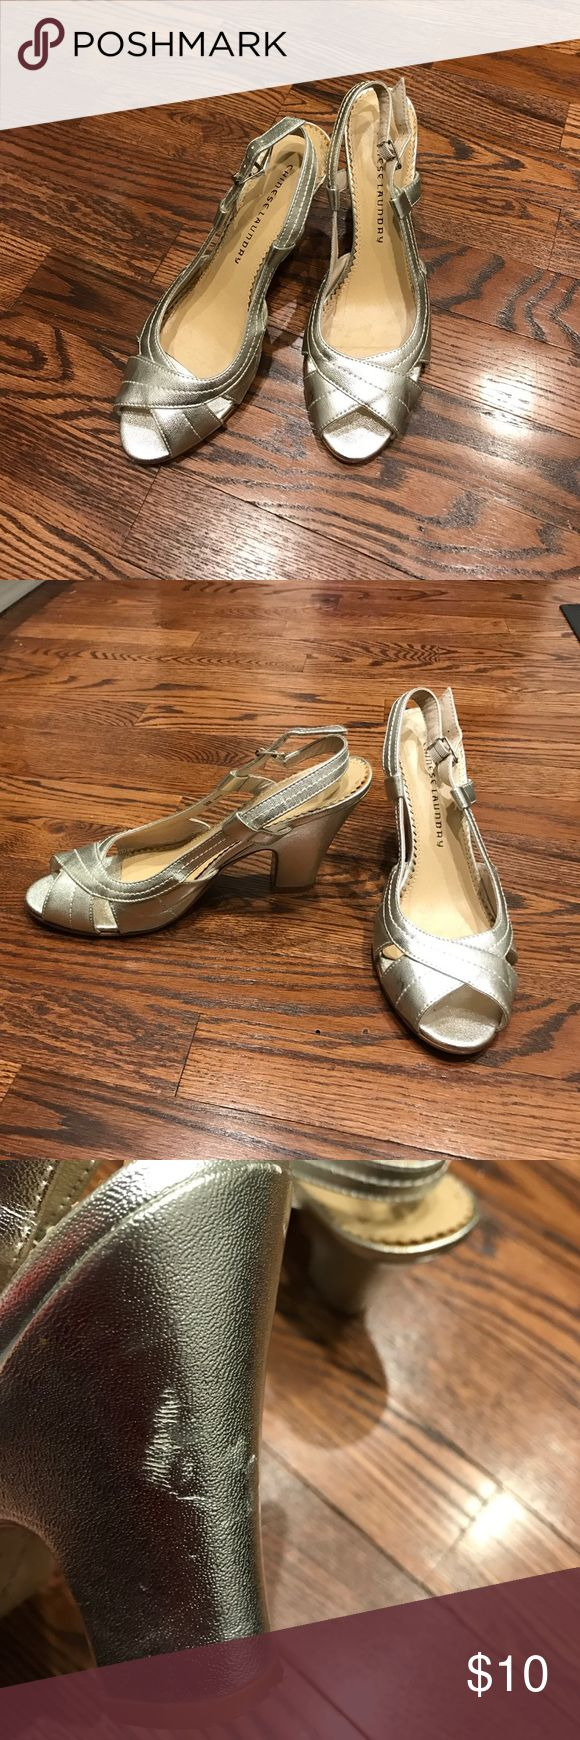 Chinese Laundry silver heels (4 inches) size 9 Chinese Laundry silver heels (4